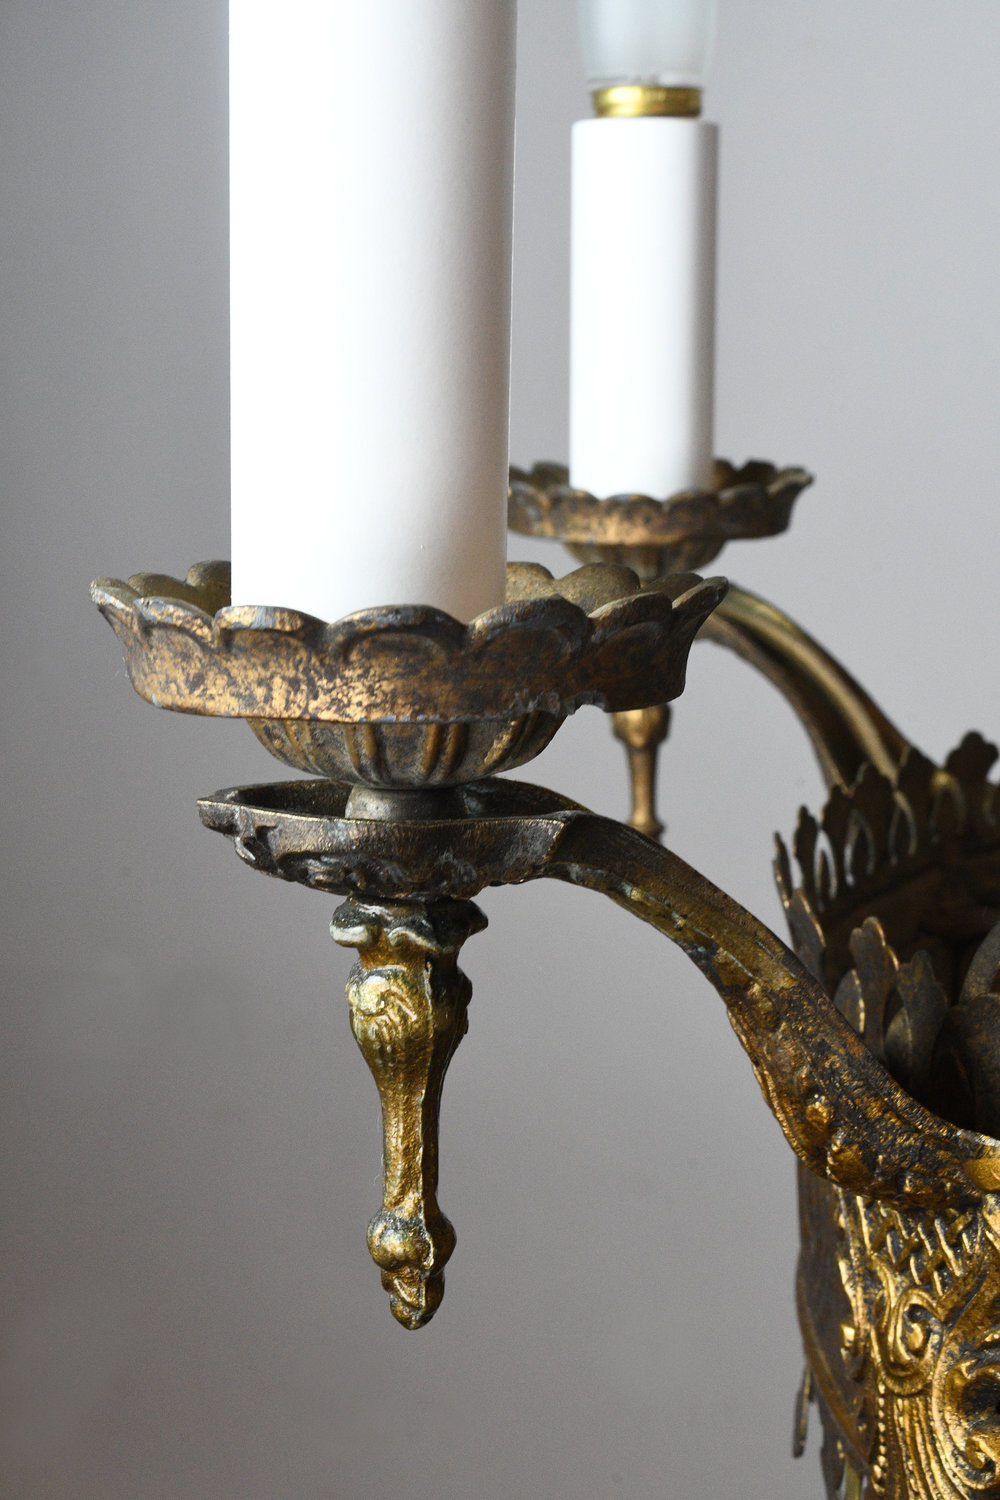 47529-6-candle-tudor-brass-chand-with-bent-glass-detail-19.jpg